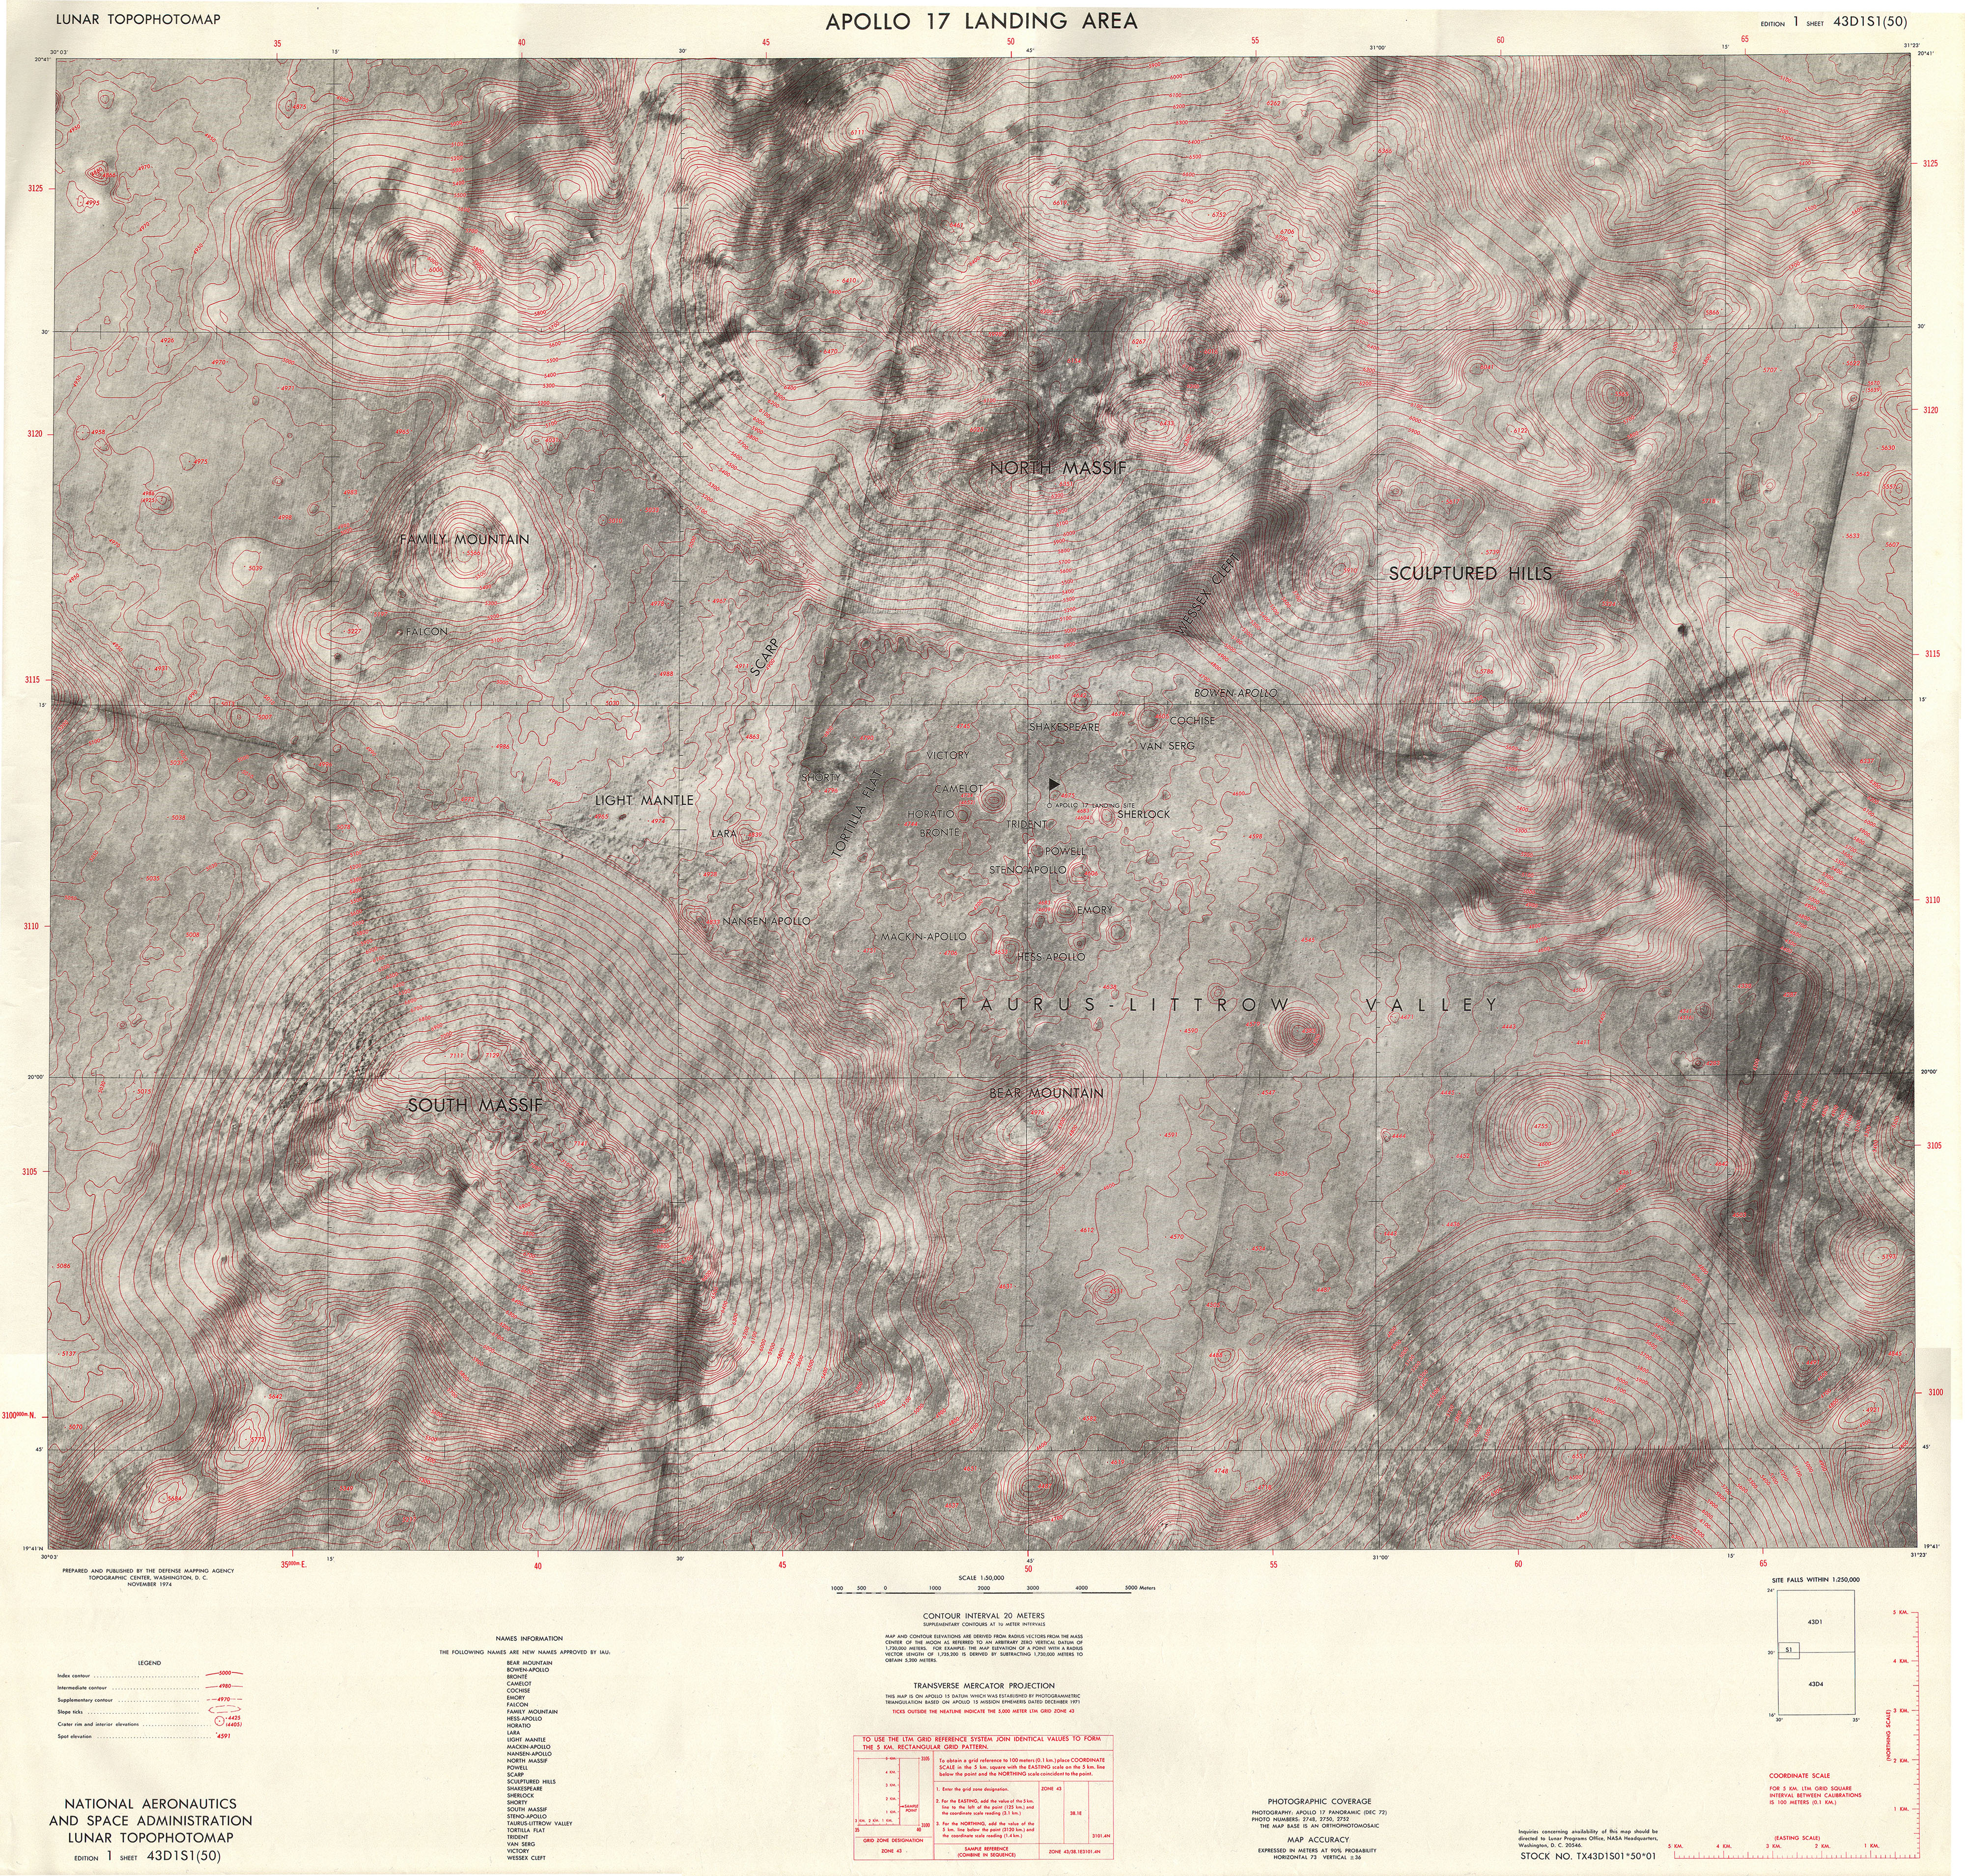 Apollo 17 Image Library 1994 Infinity Wiring Diagram Topophotomap 6 Mb Can